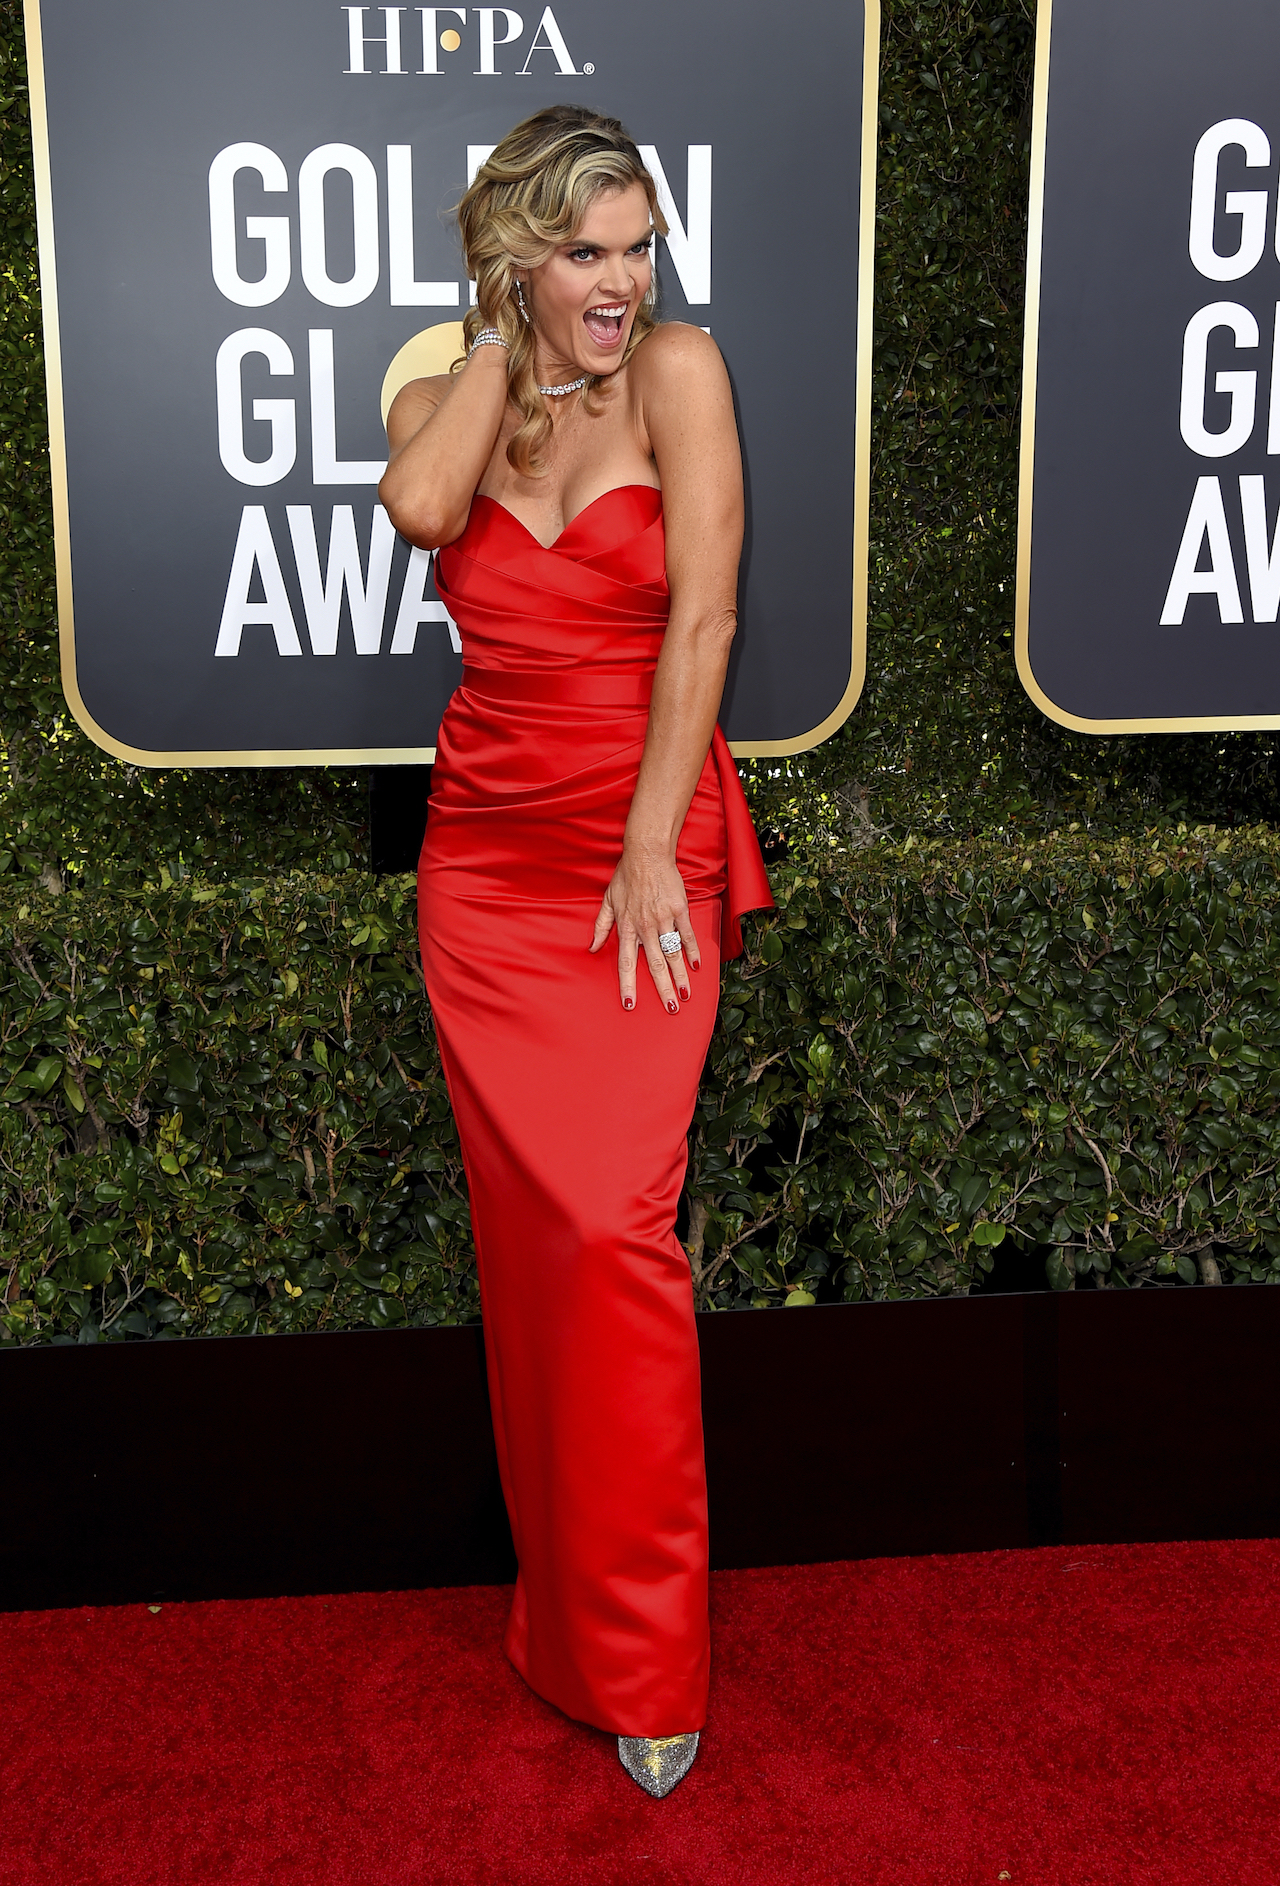 "<div class=""meta image-caption""><div class=""origin-logo origin-image ap""><span>AP</span></div><span class=""caption-text"">Missi Pyle arrives at the 76th annual Golden Globe Awards at the Beverly Hilton Hotel on Sunday, Jan. 6, 2019, in Beverly Hills, Calif. (Jordan Strauss/Invision/AP)</span></div>"